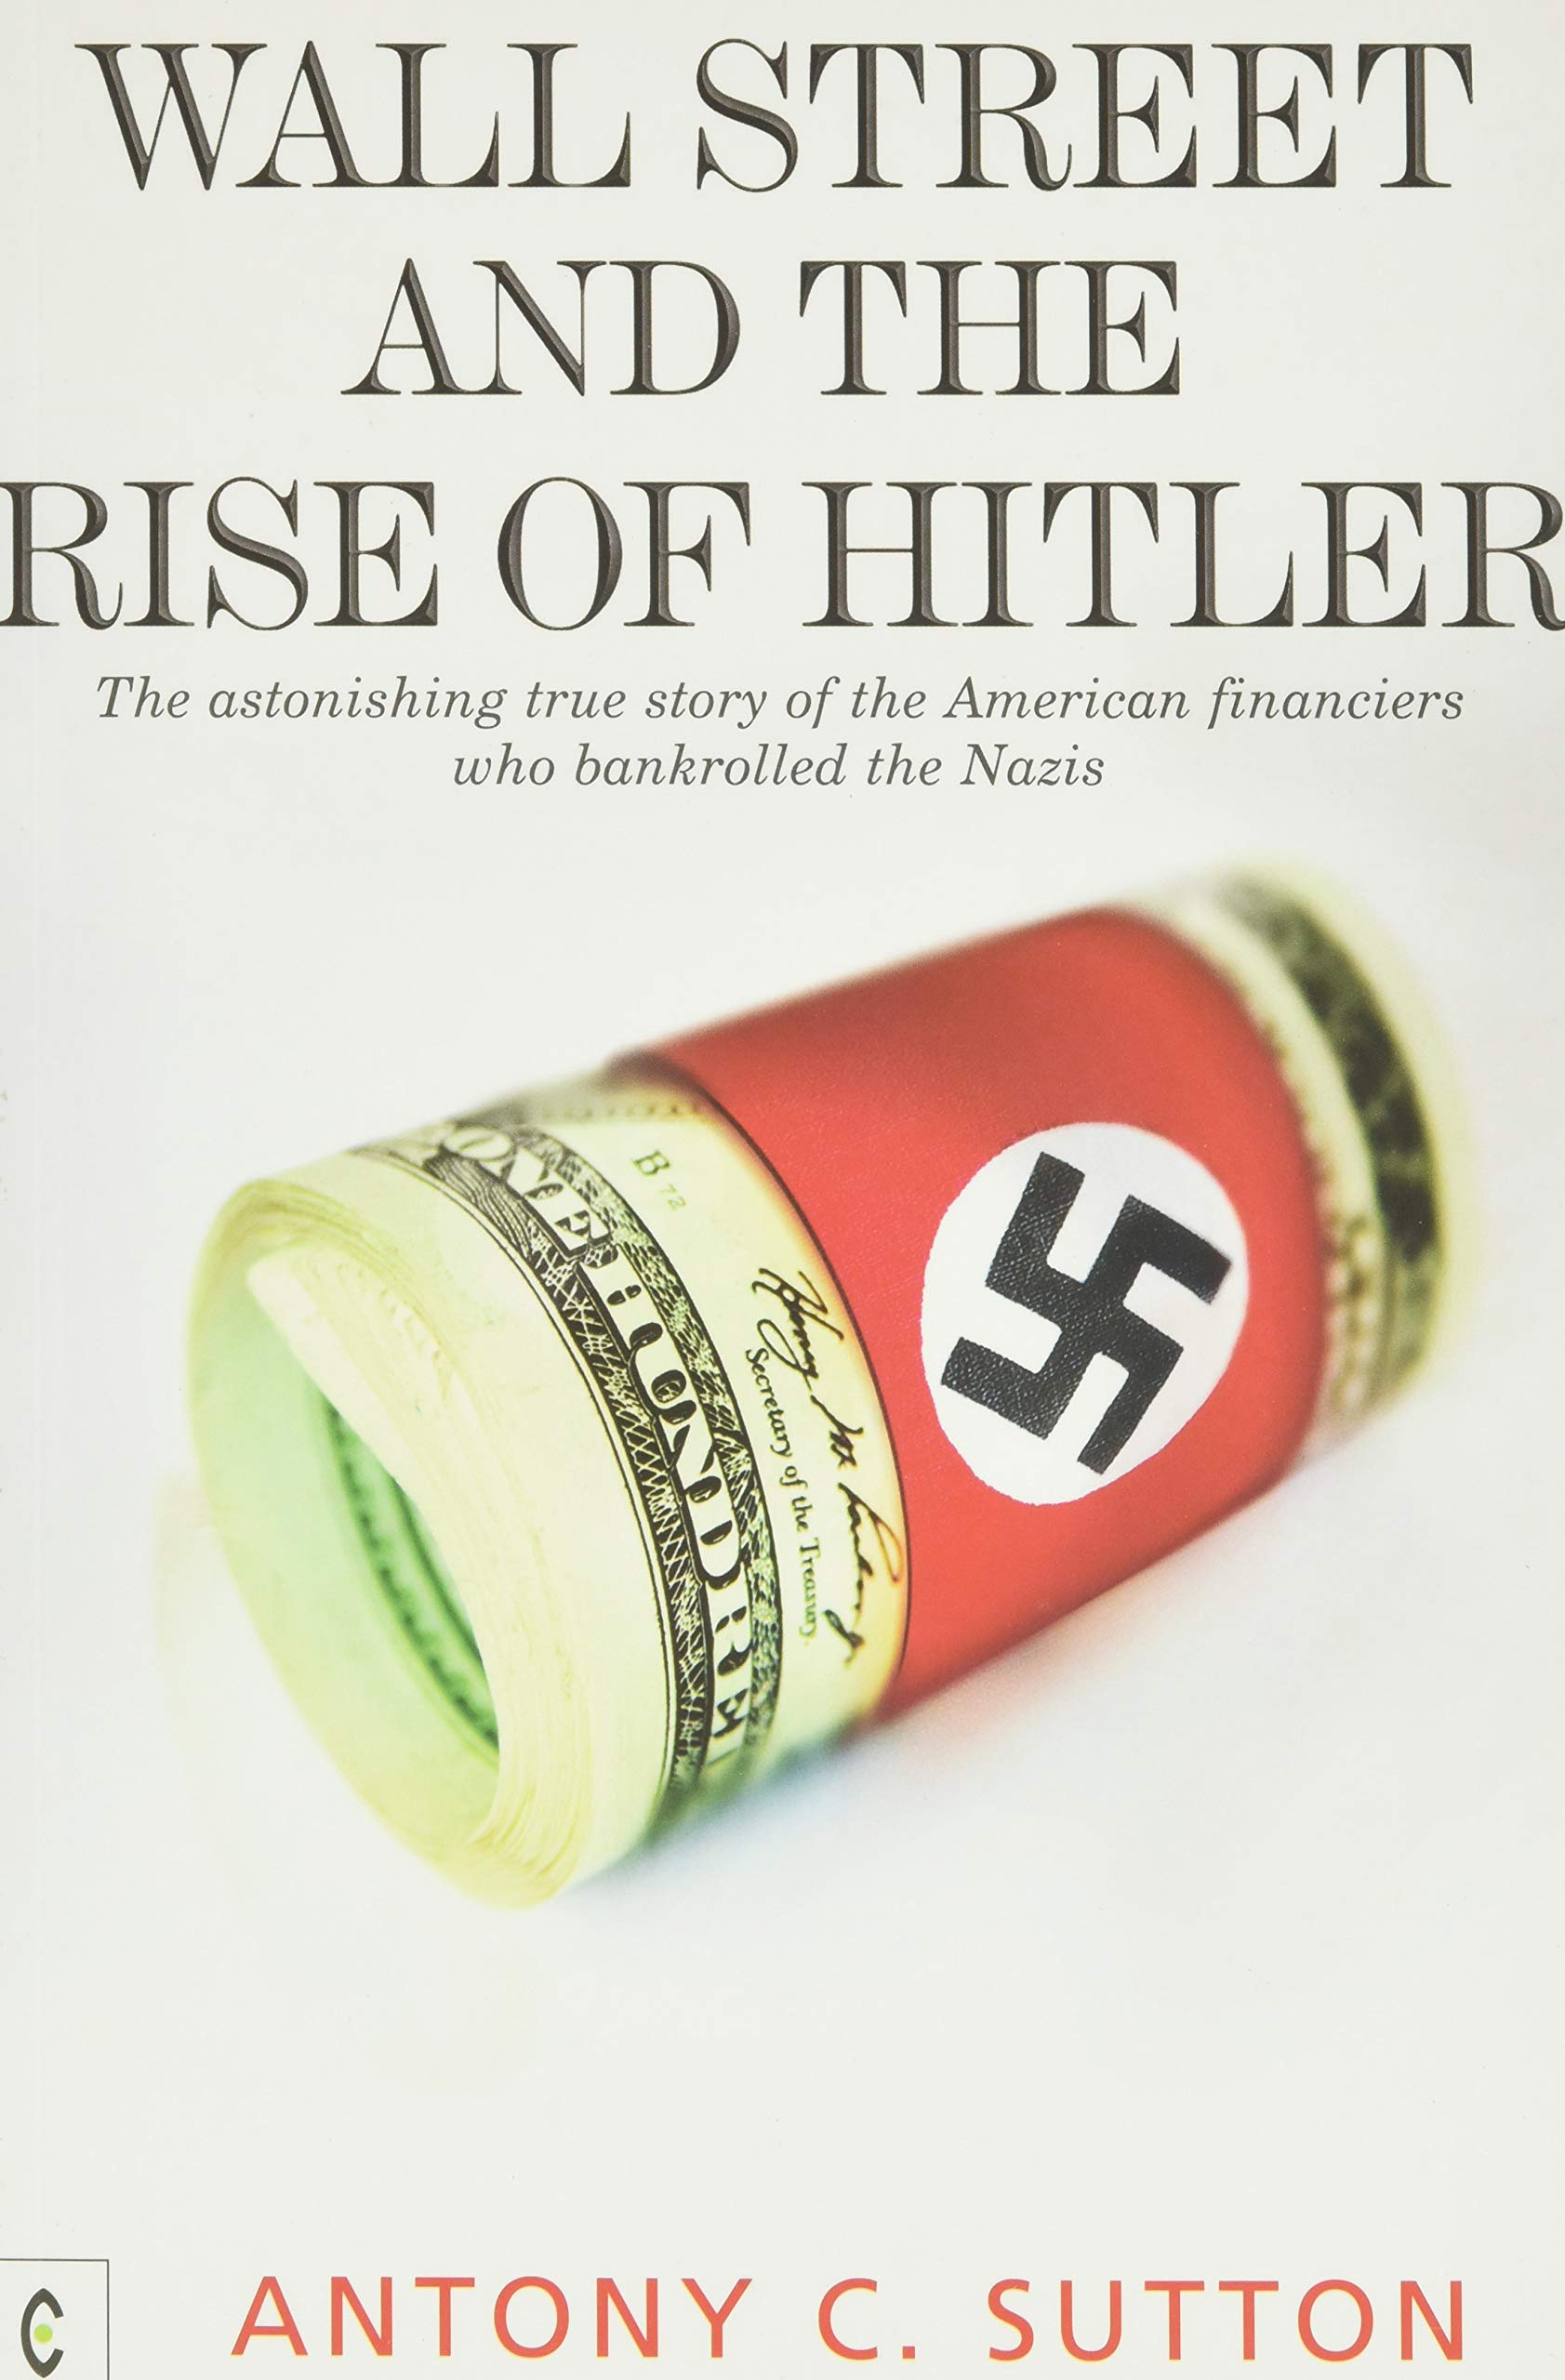 Wall Street and the Rise of Hitler: The Astonishing True Story of the  American Financiers Who Bankrolled the Nazis: Sutton, Antony C.:  9781905570270: Amazon.com: Books